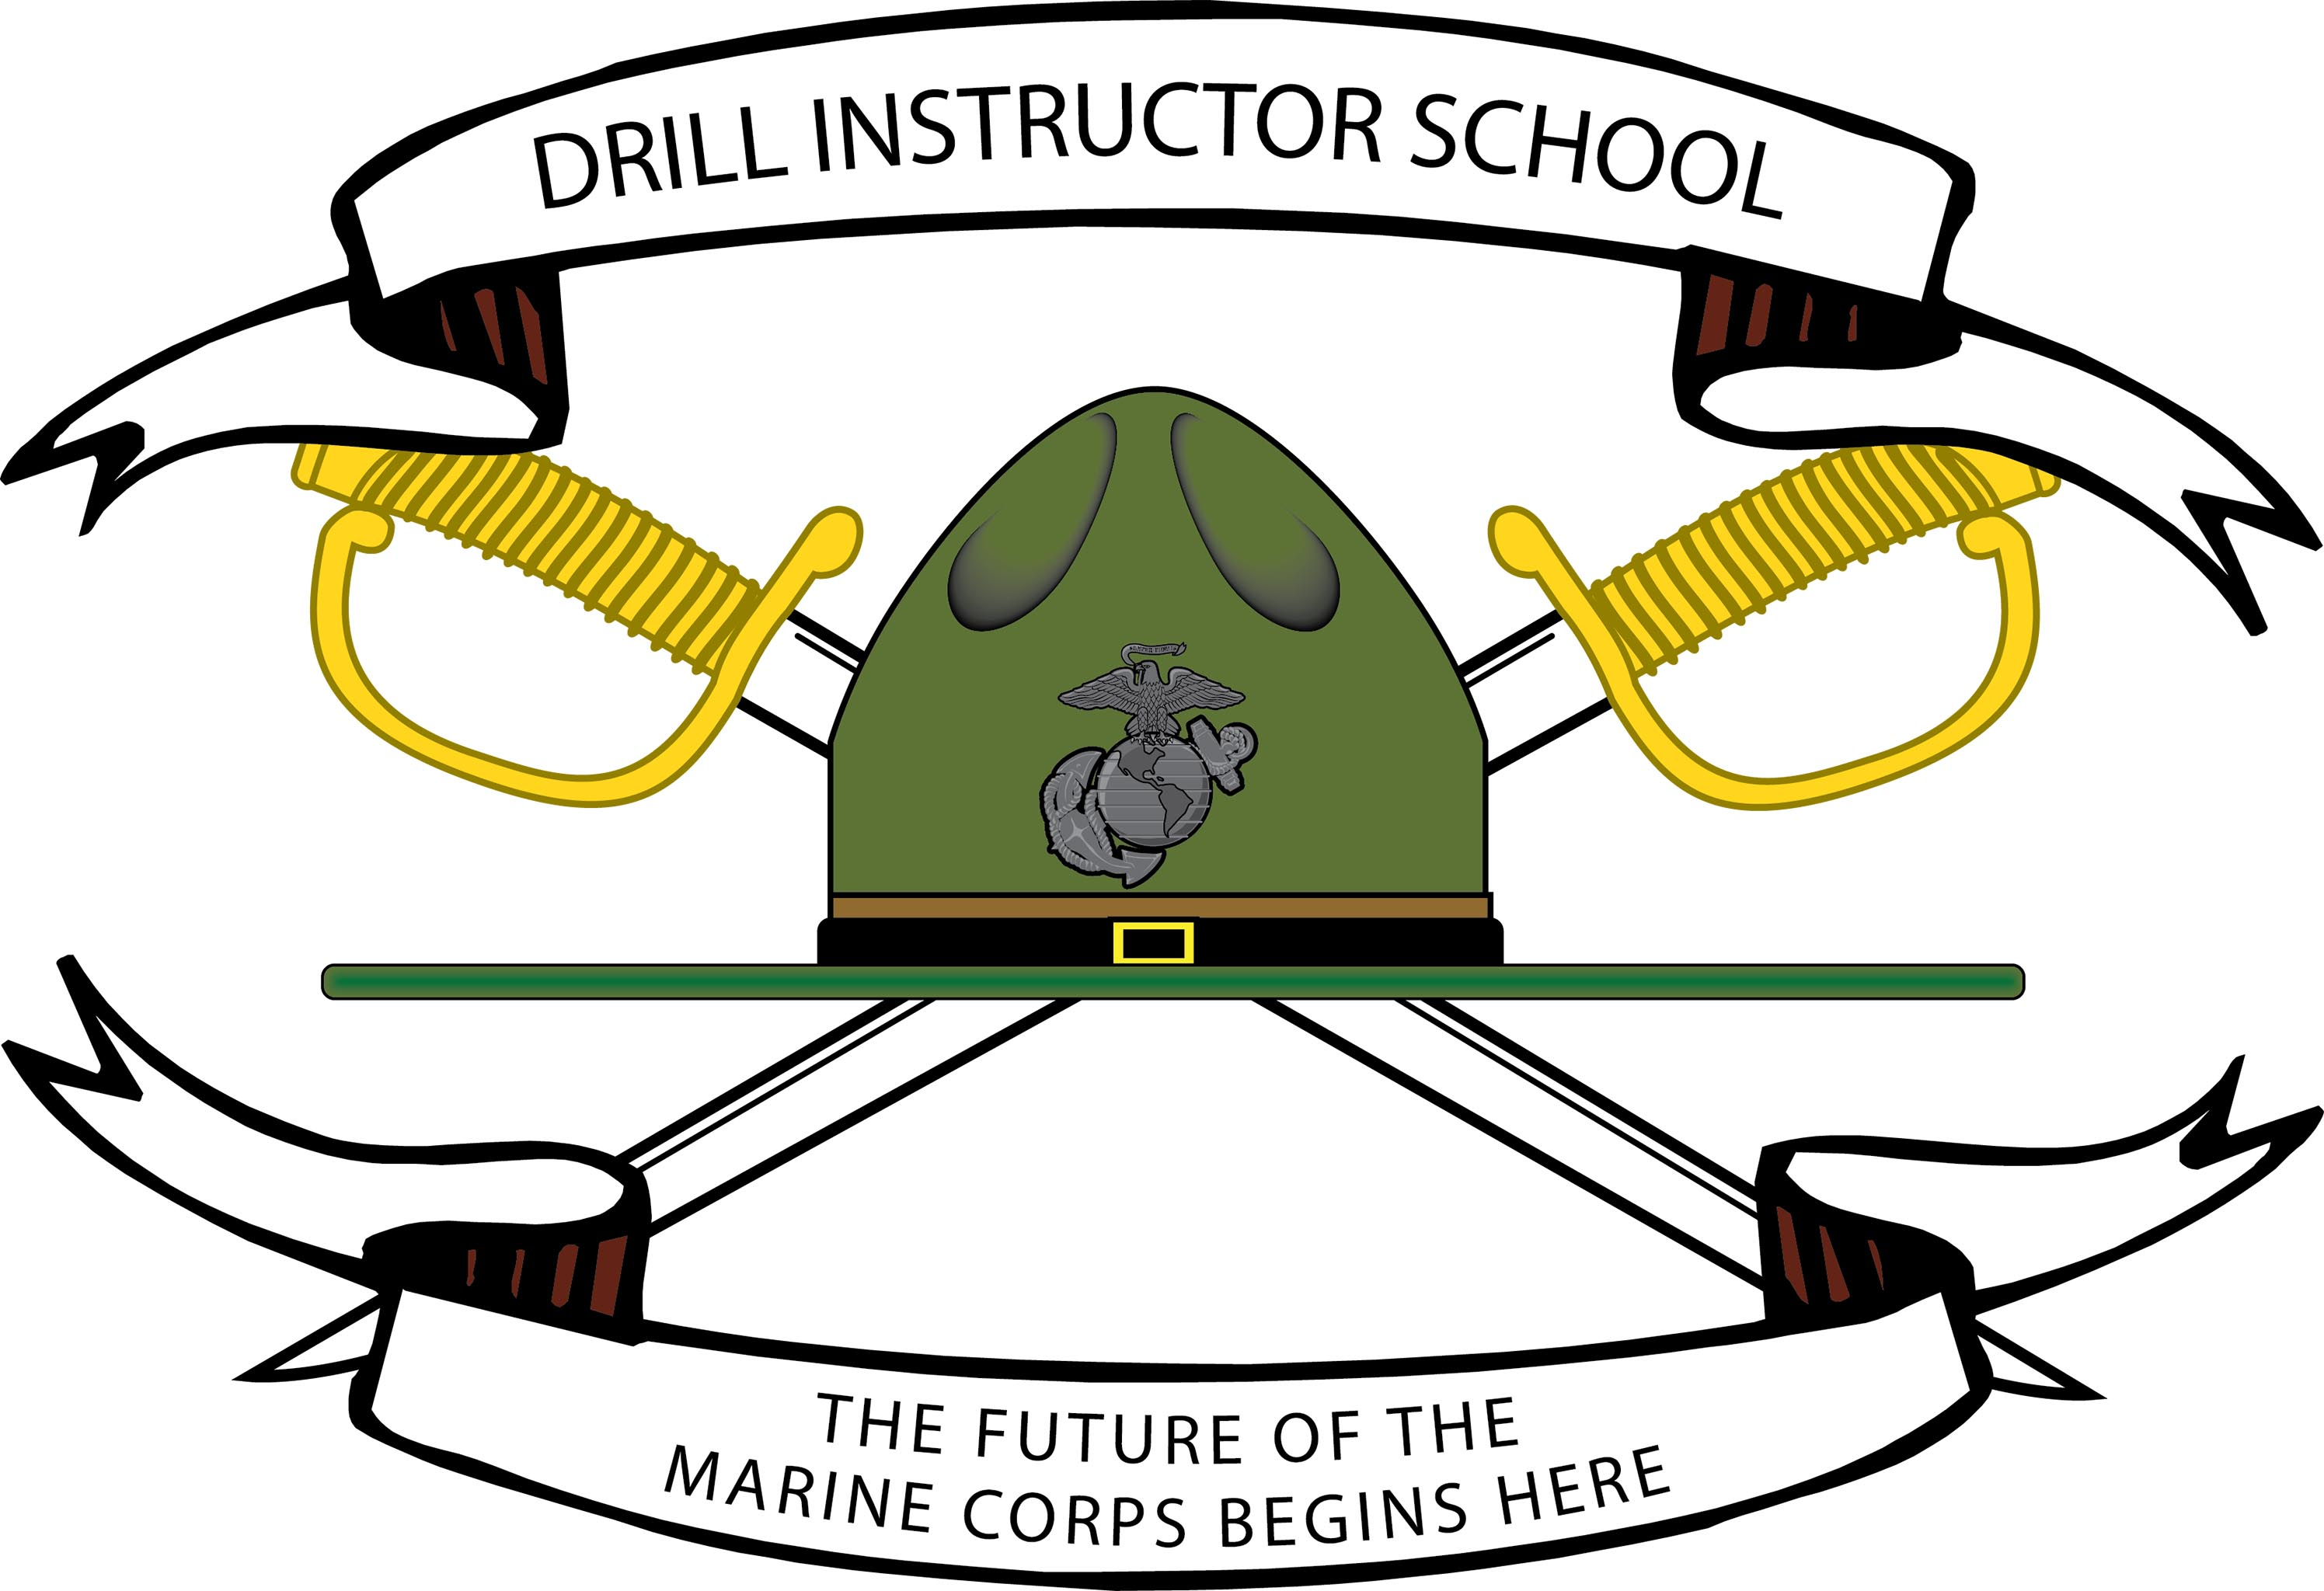 Di School Logo With 2 Swords And Bannergver2016 04 06 111647 820